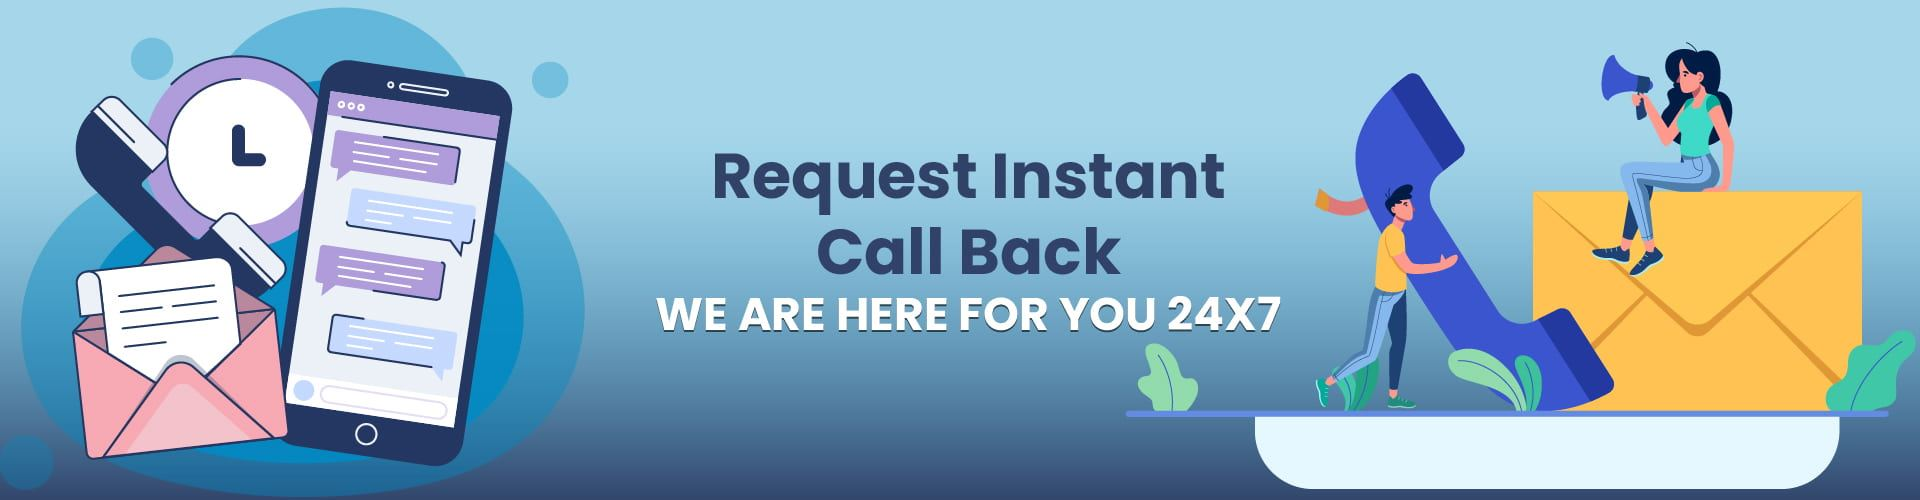 Request Instant Call Back